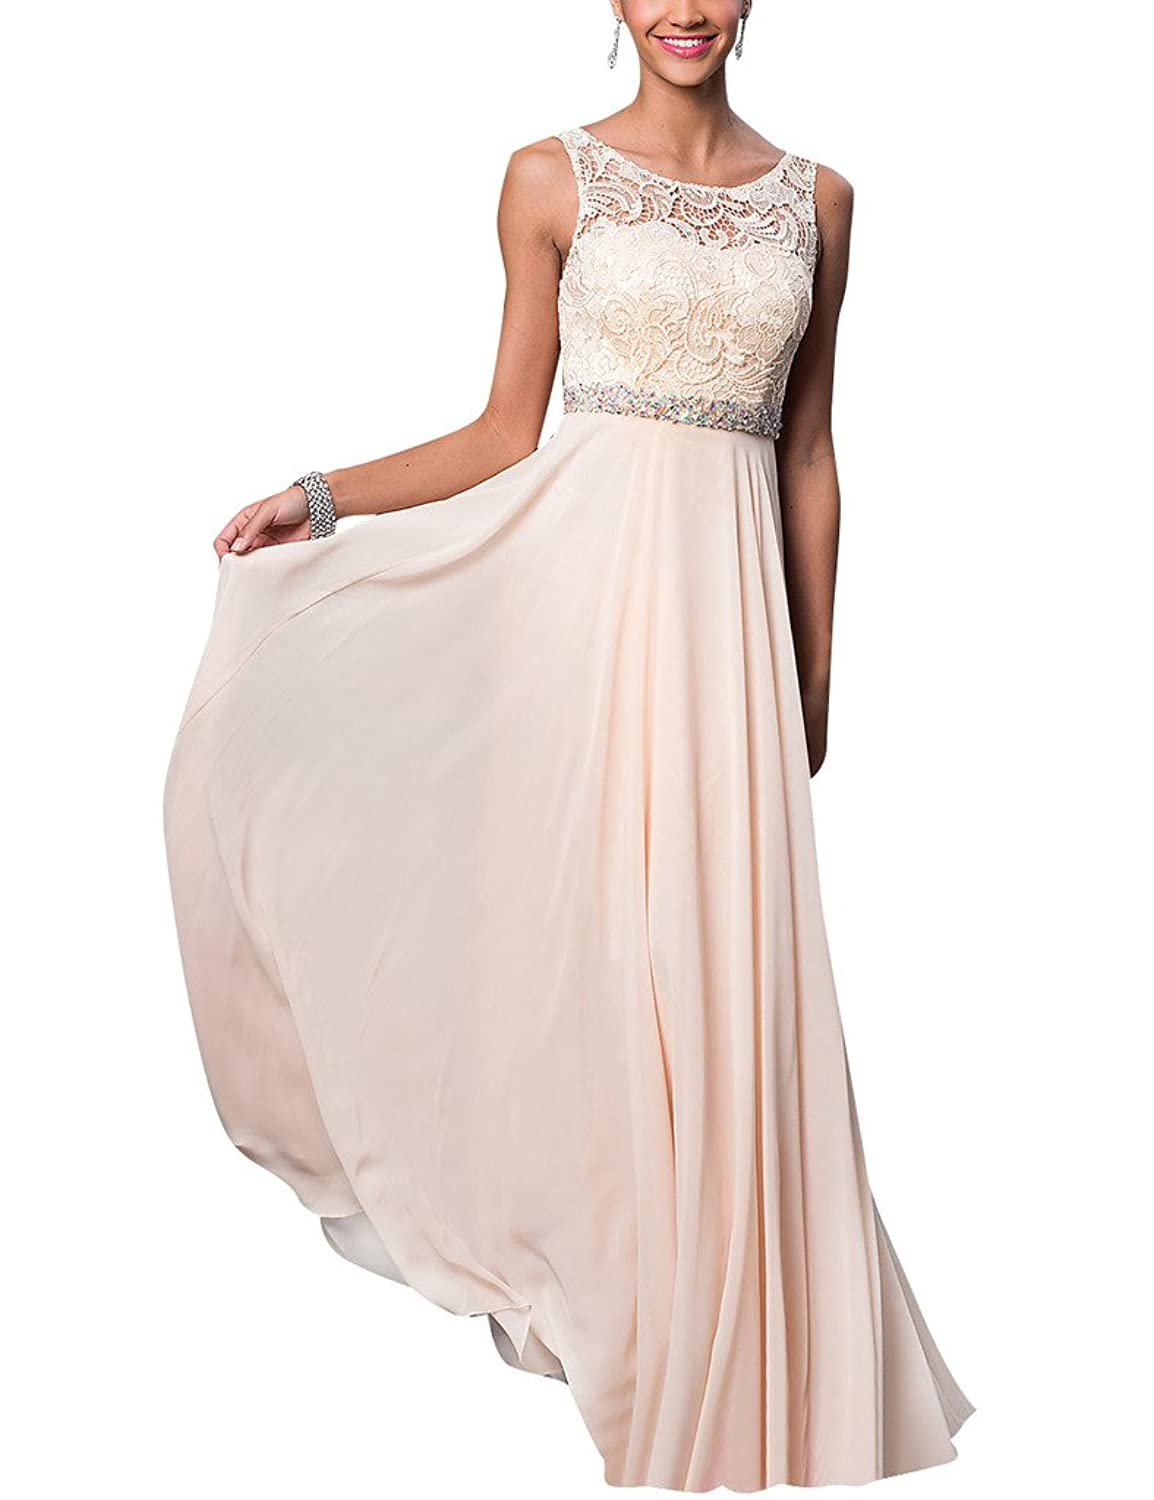 HUINI Sheer Lace Cowl Neck Long Chiffon Prom Dresses Beaded Evening Formal Gowns